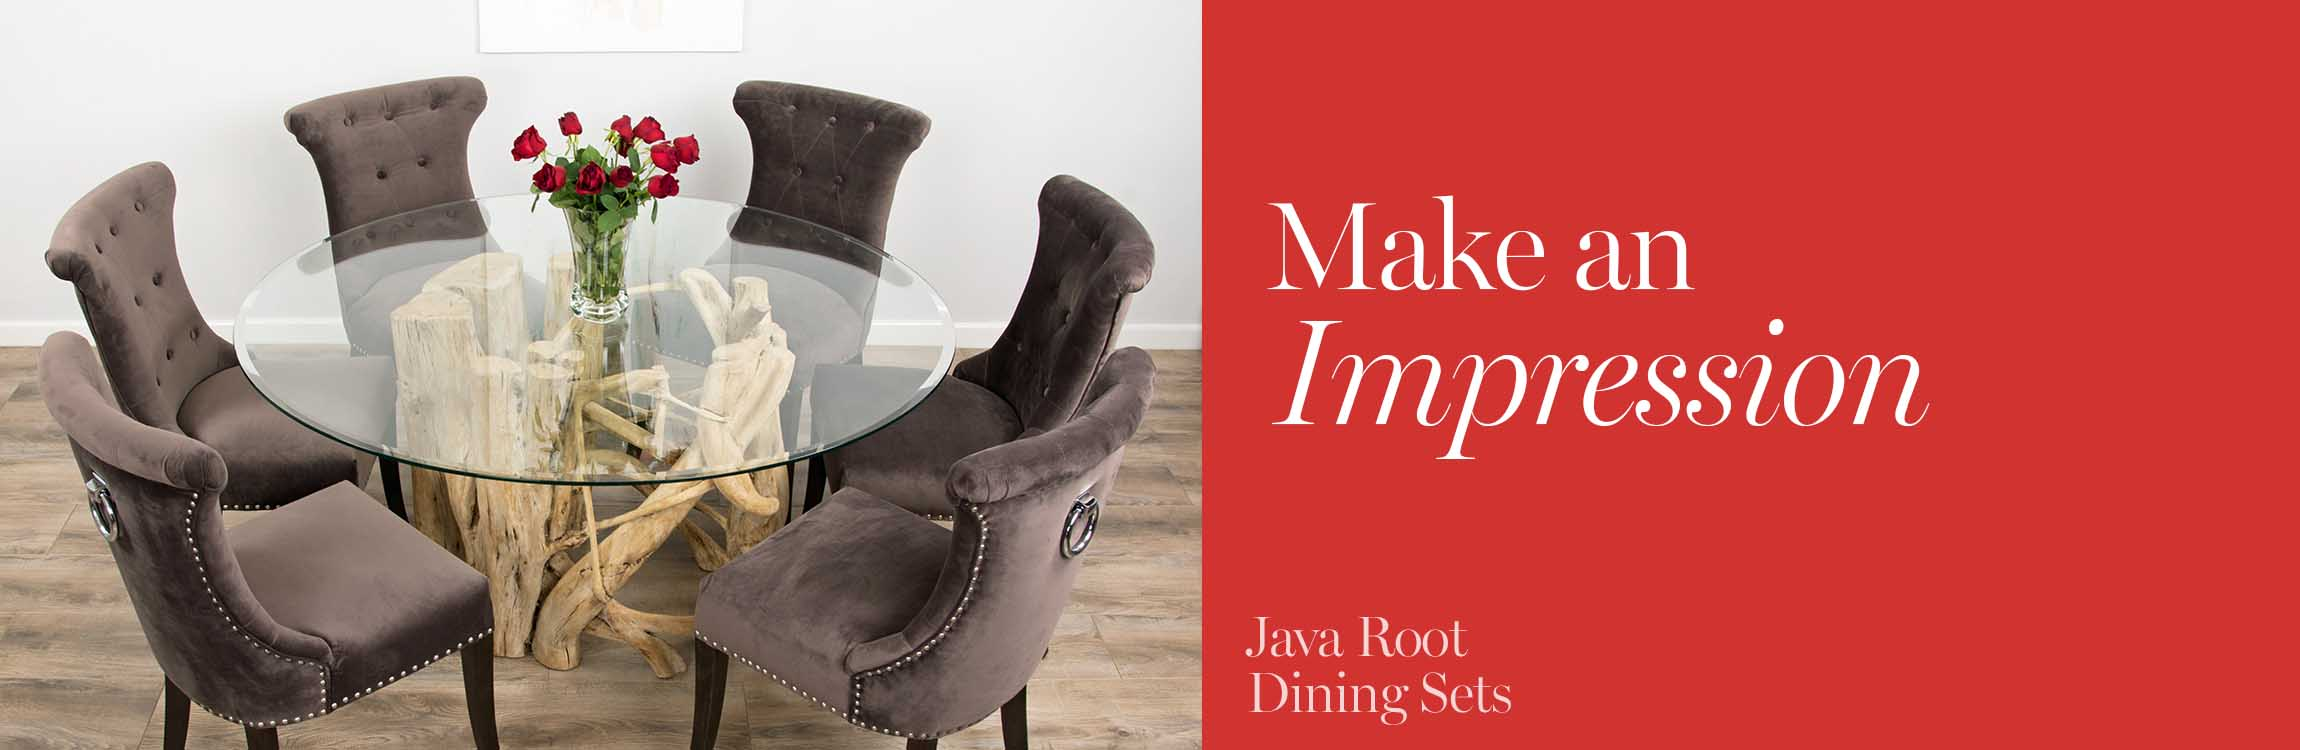 Java Root Dining Sets